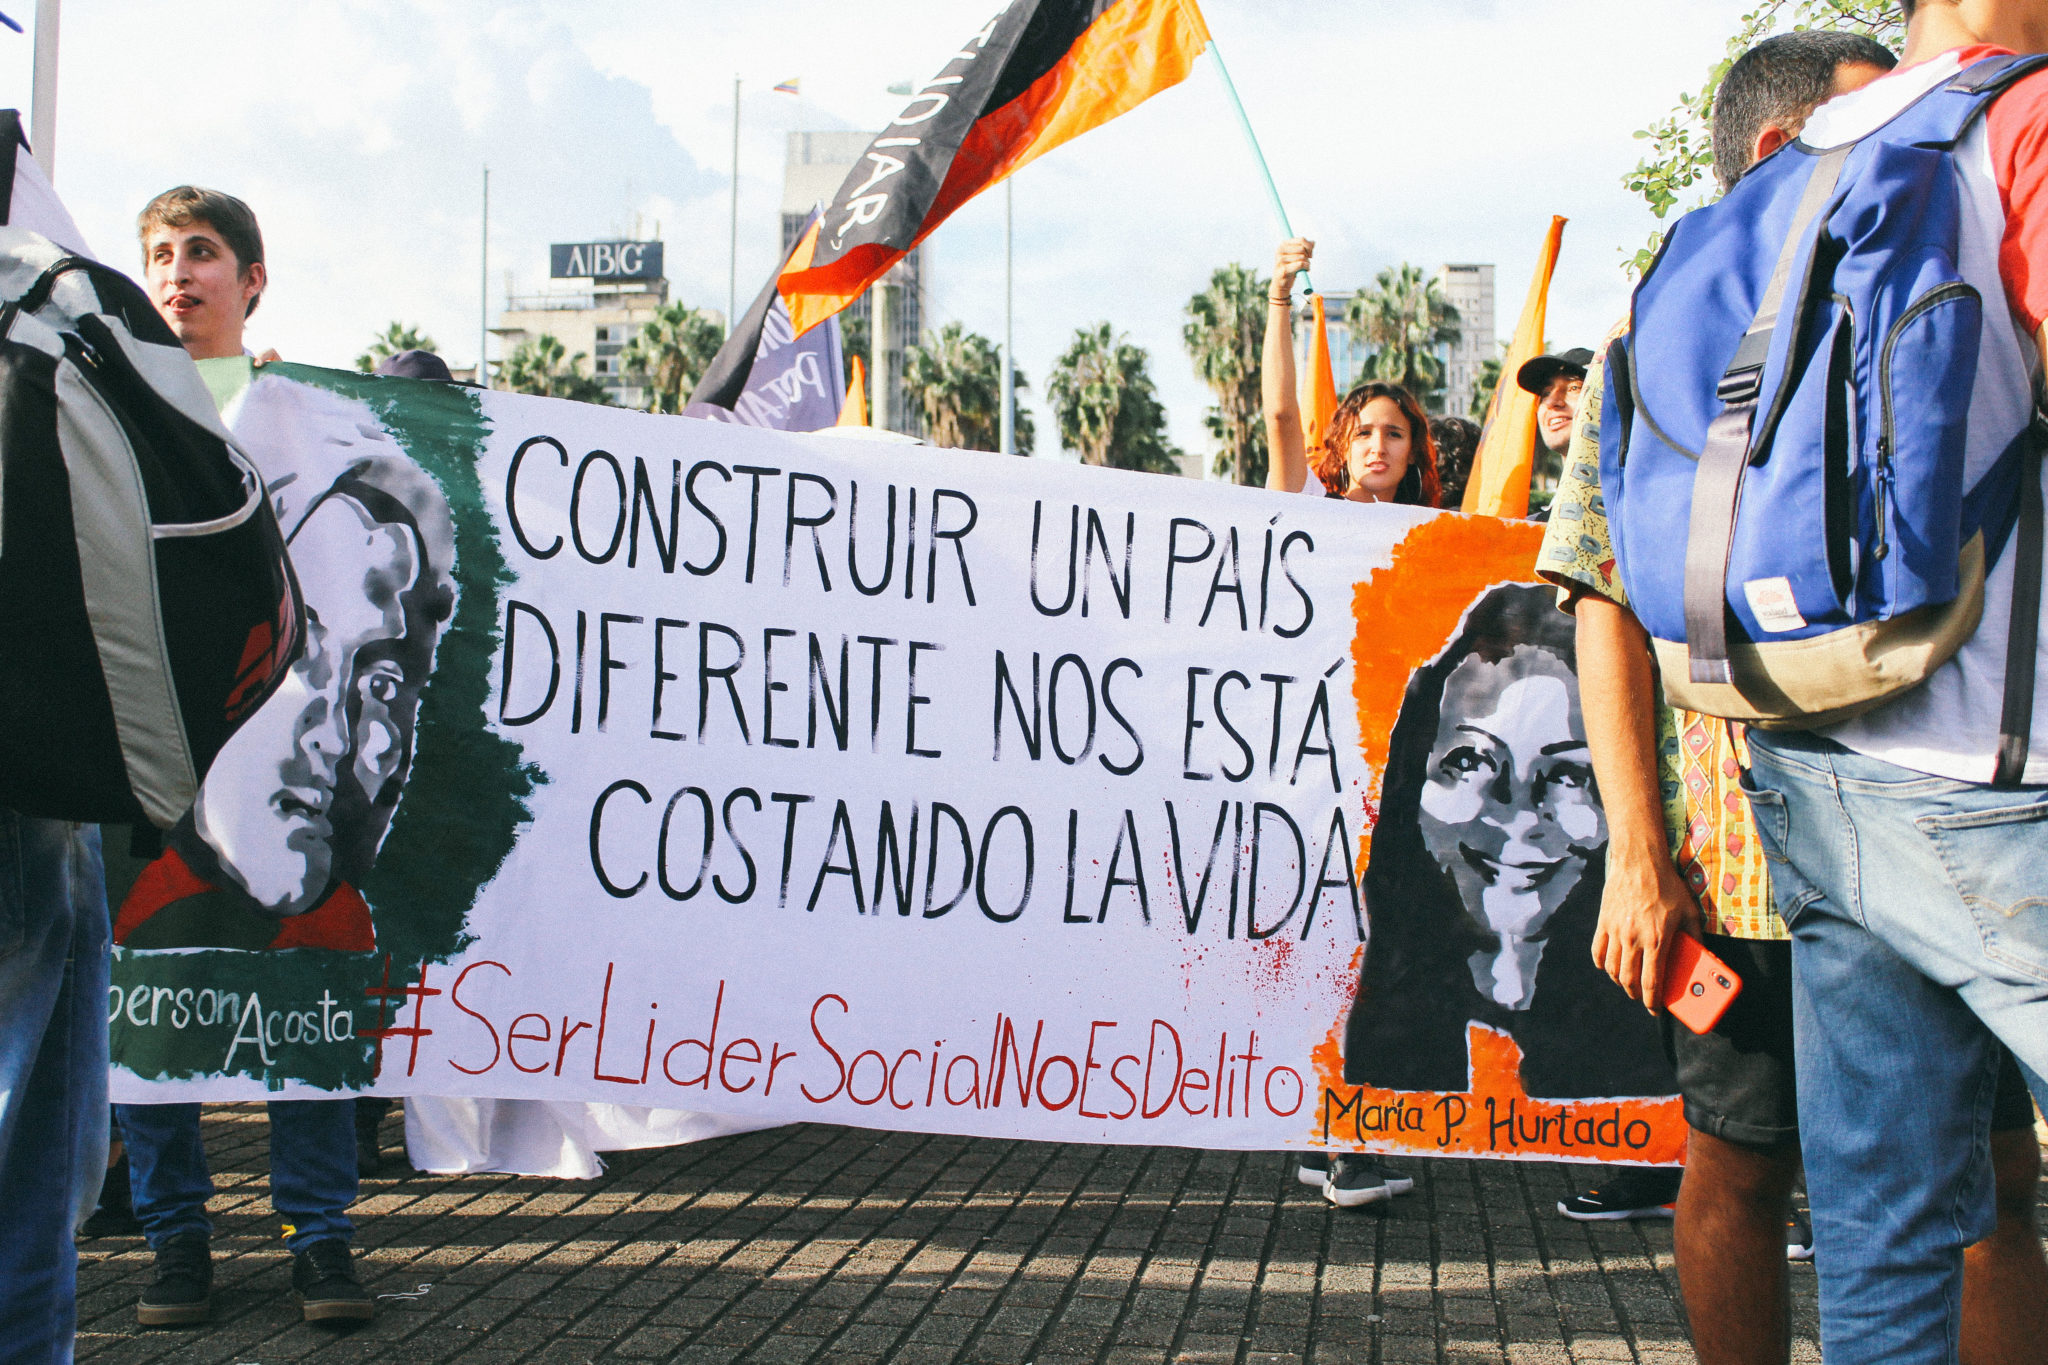 In photos: Medellín marches for the lives of social leaders